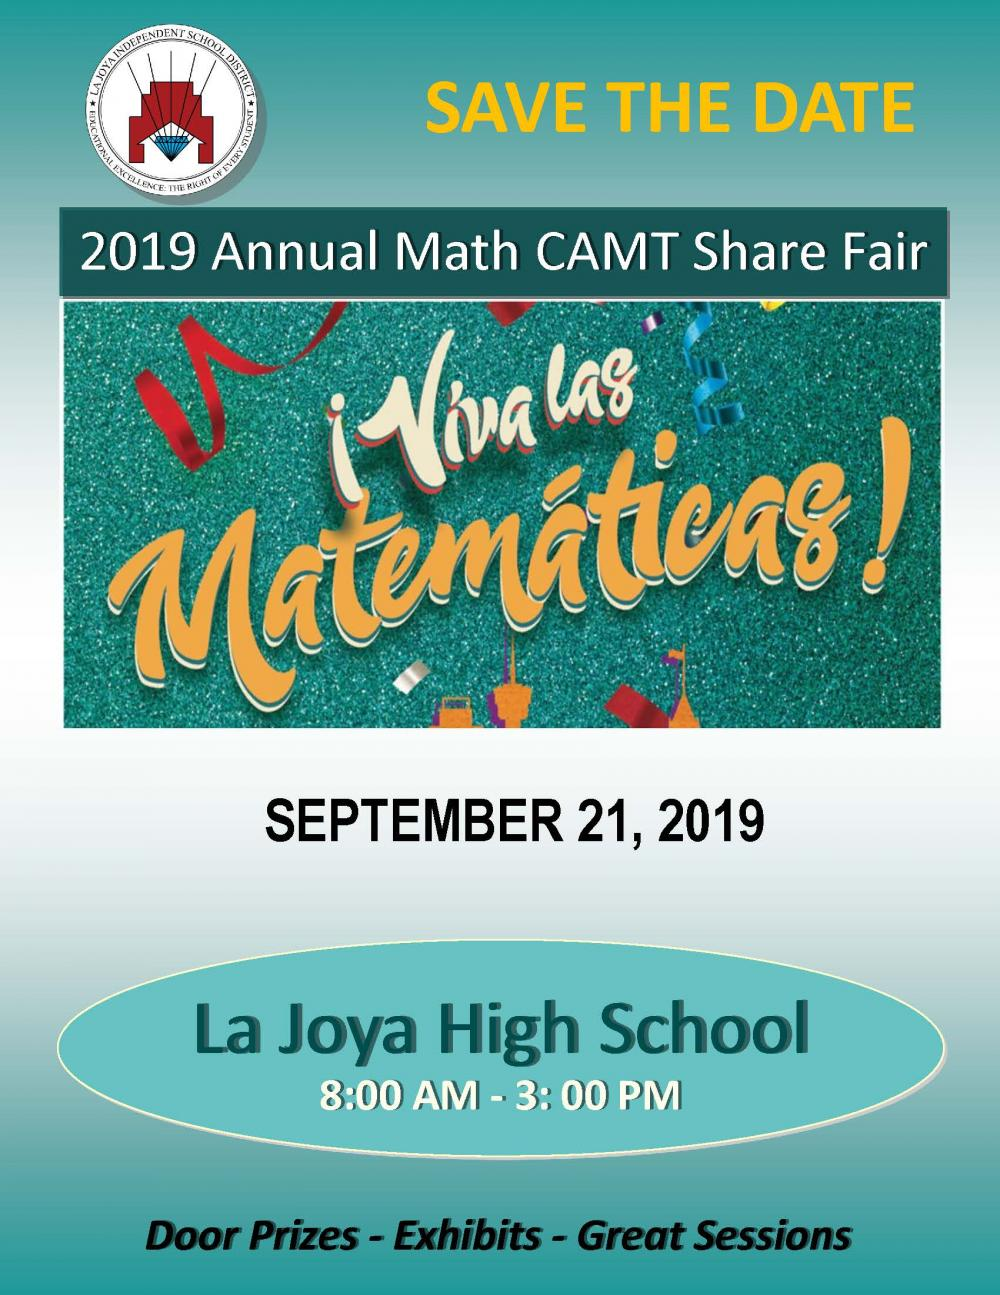 2019 CAMT sHARE